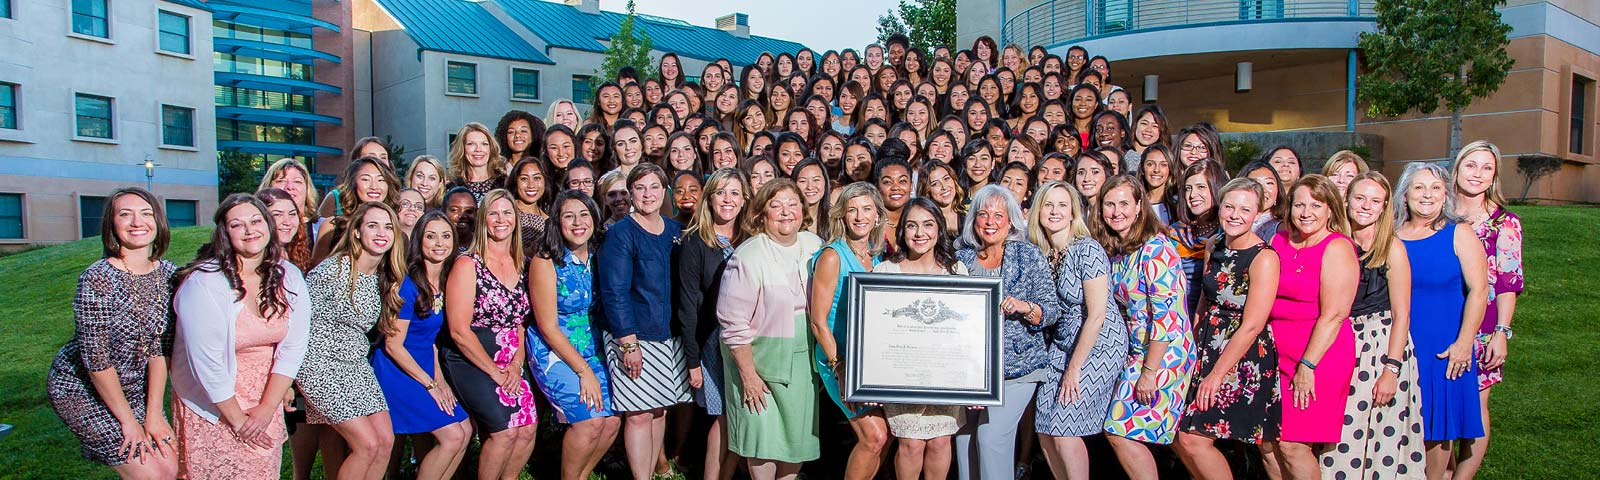 sorority installation photography example - women posing with certificate